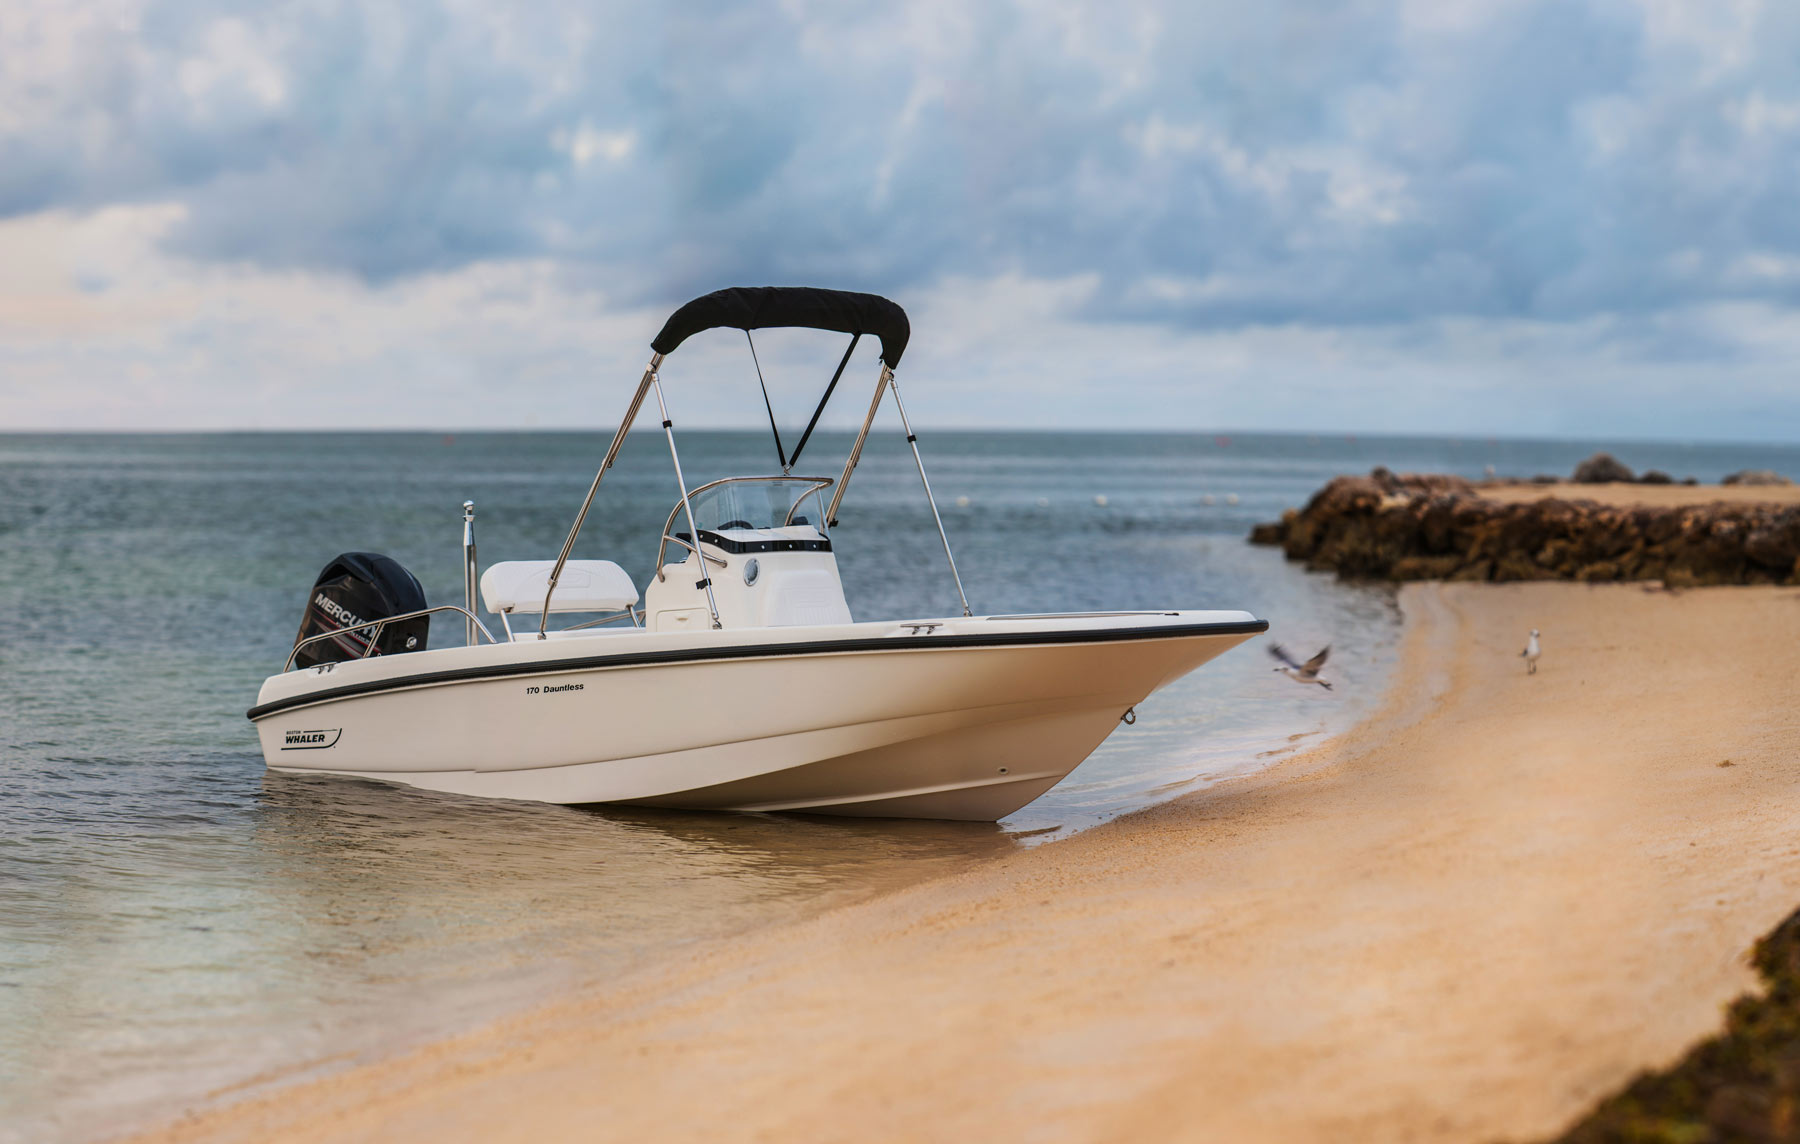 Florida Boating Photographer Richard Steinberger